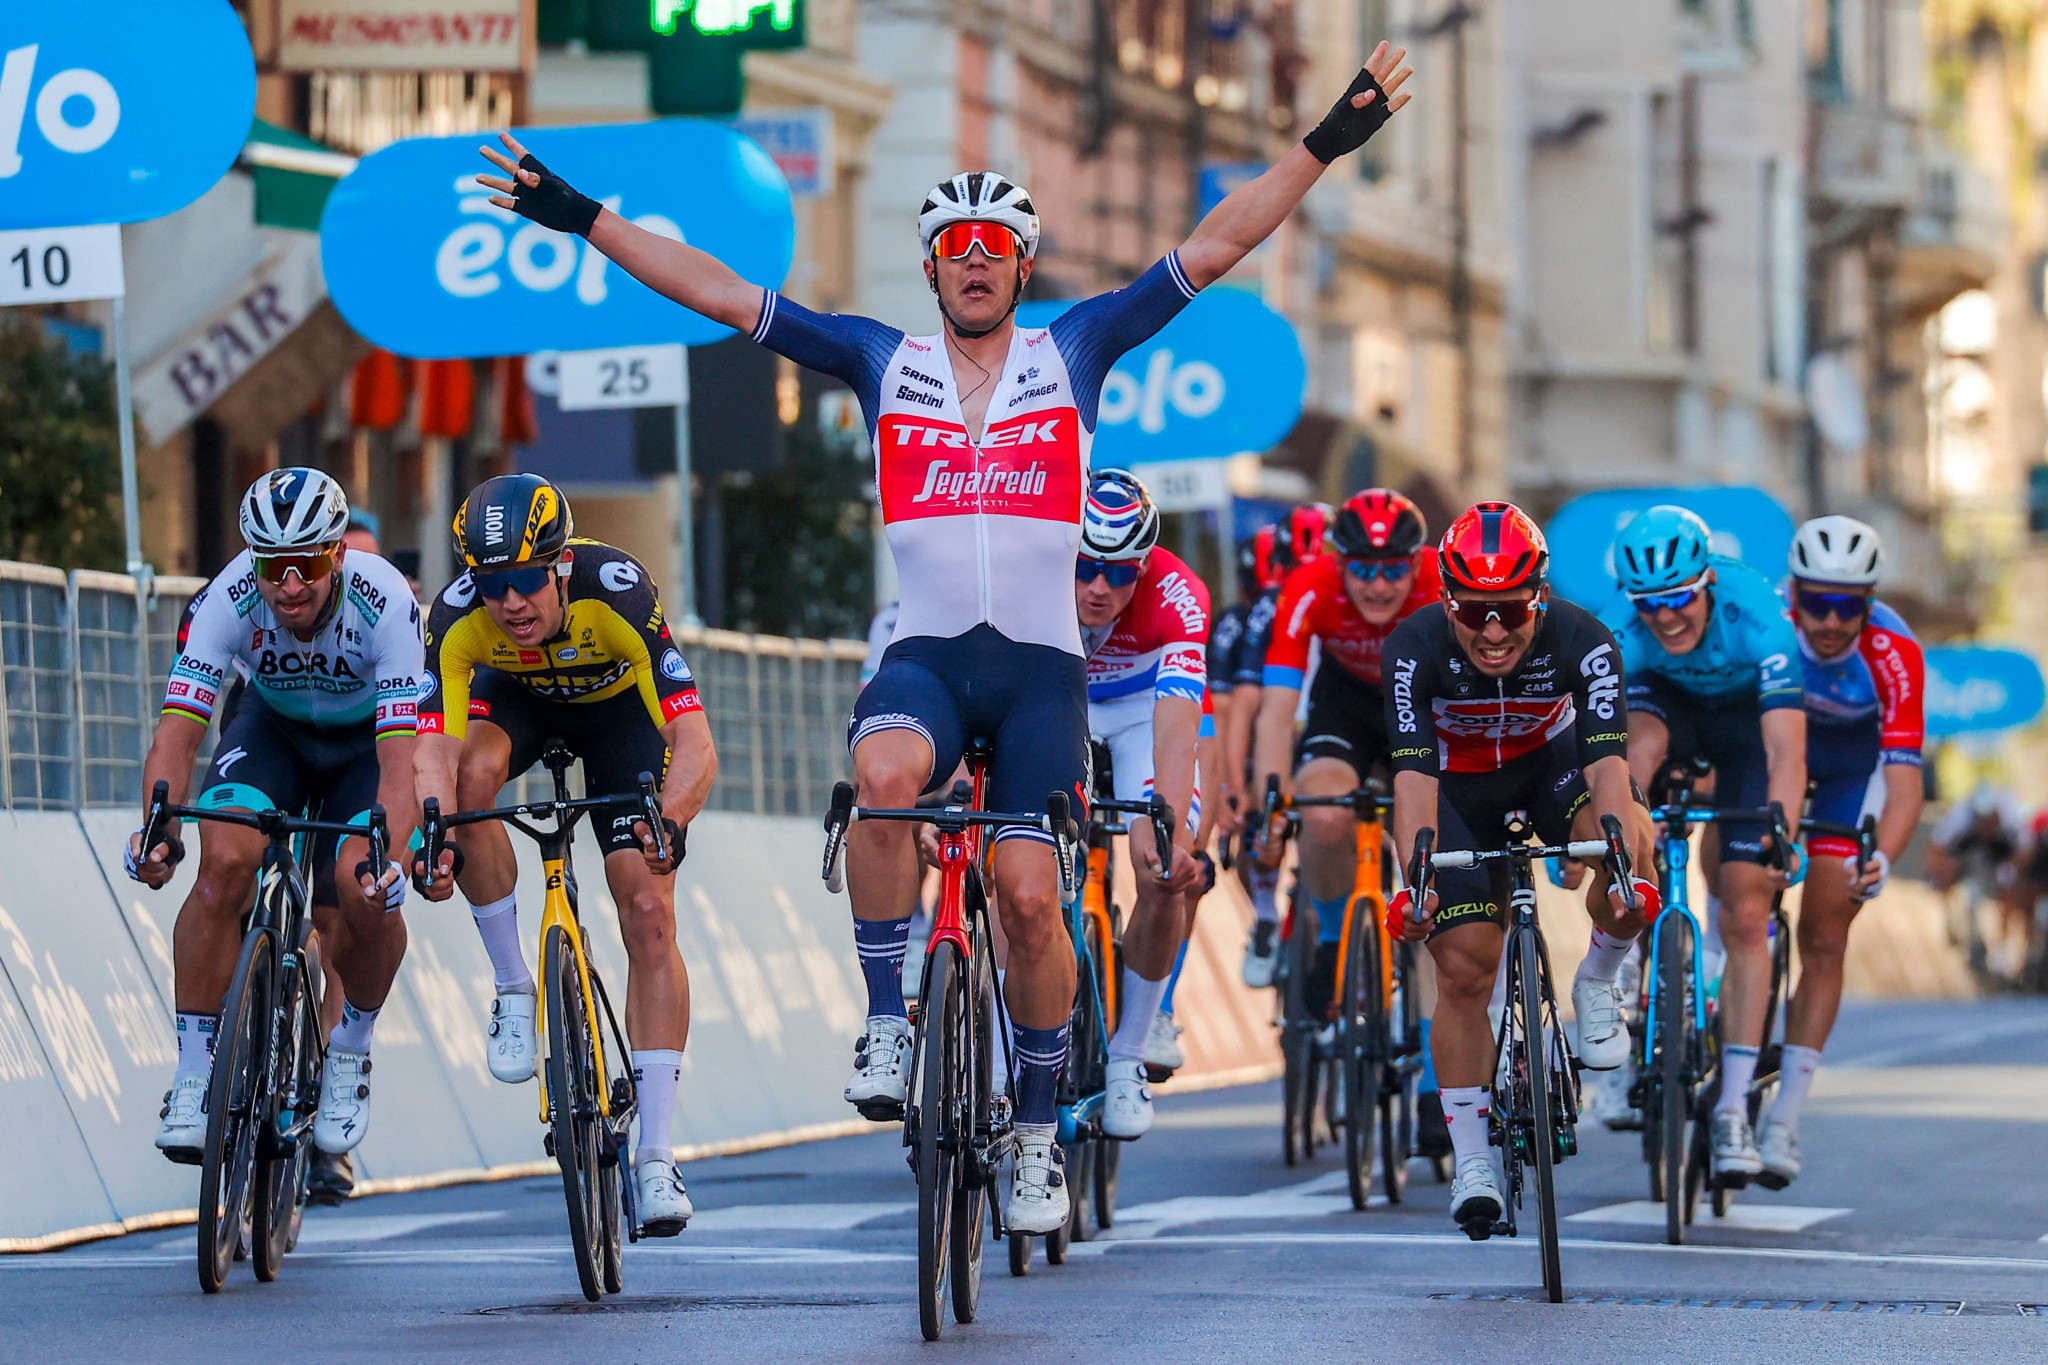 Stuyven wins Milan-San Remo after late attack